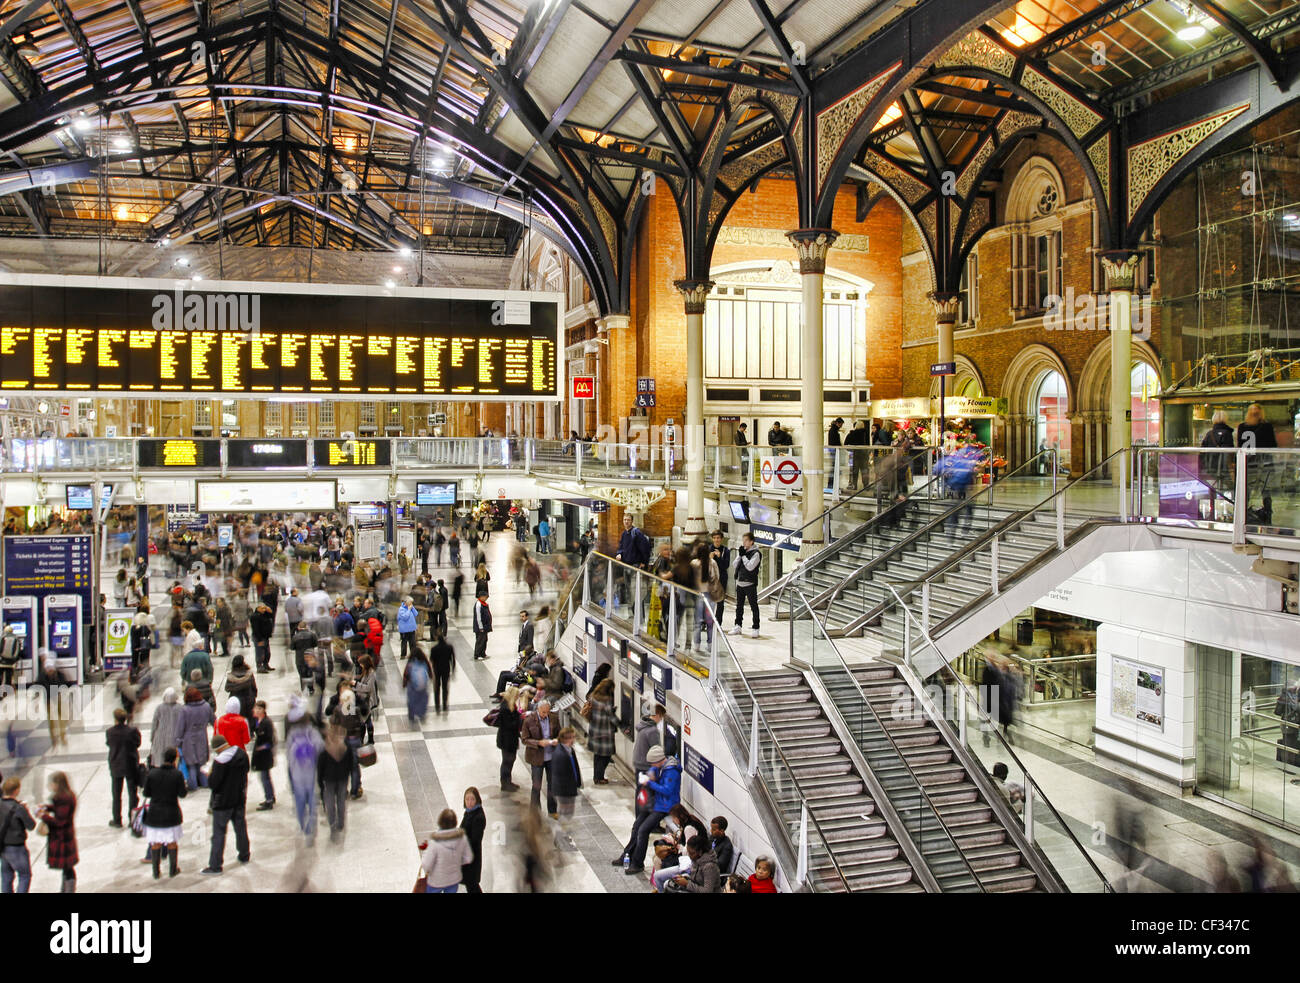 Busy concourse inside Liverpool Street Station in the City of London. - Stock Image